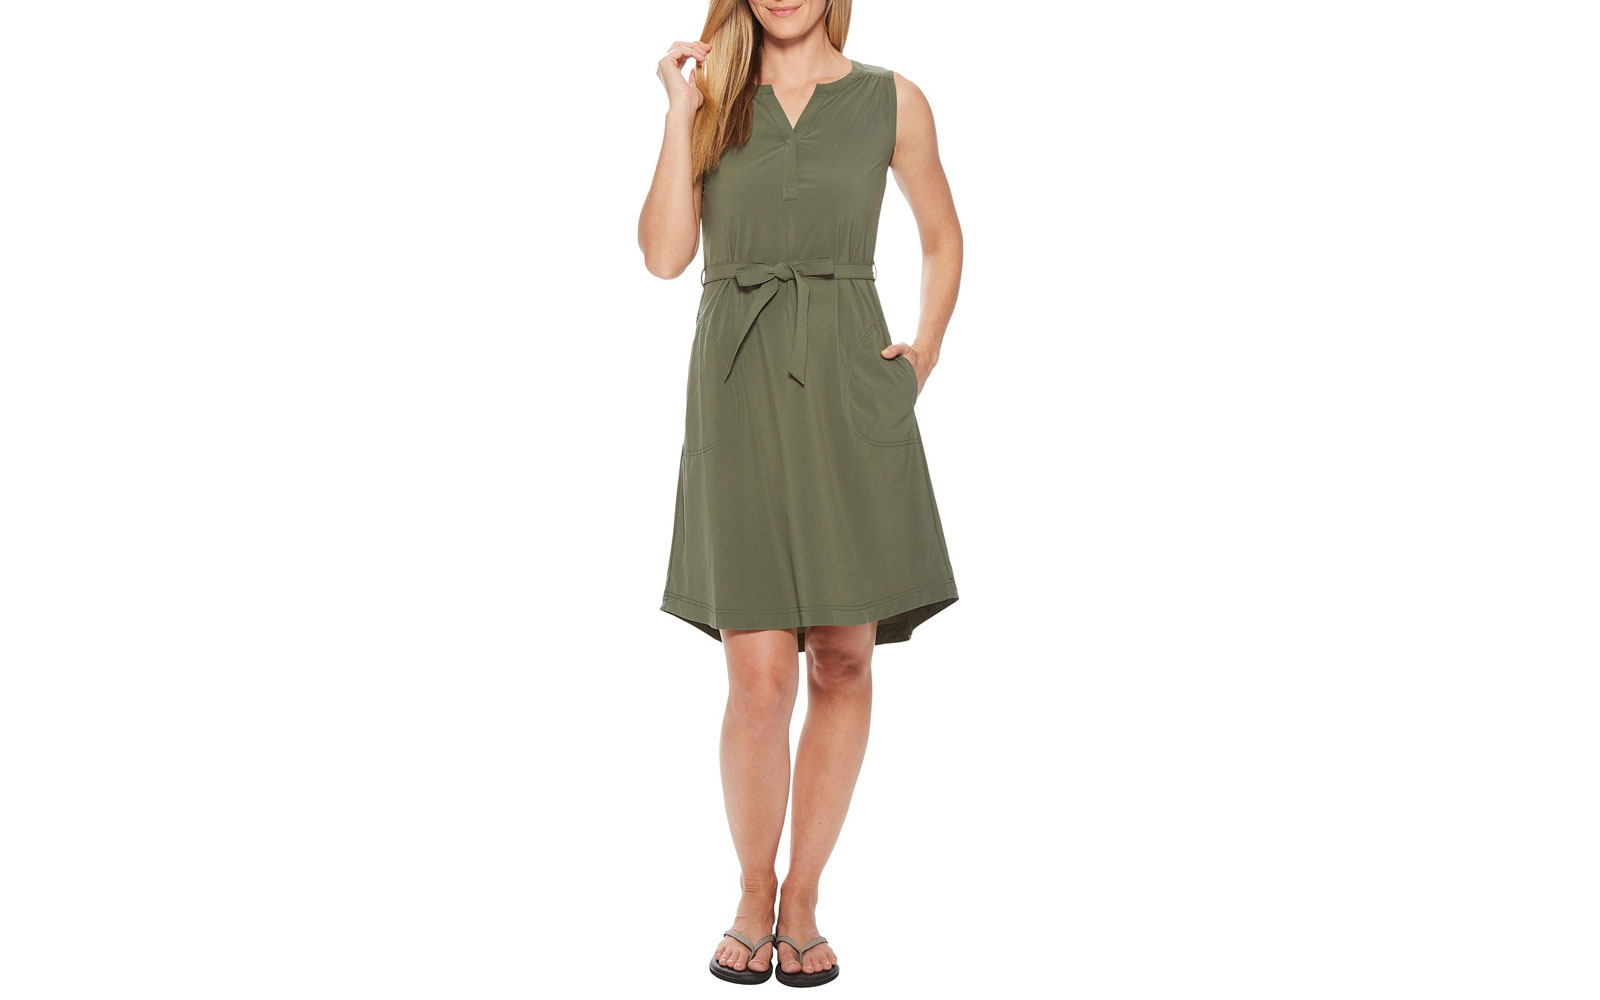 90ad87821e1 11 Wrinkle-resistant Dresses for Travel